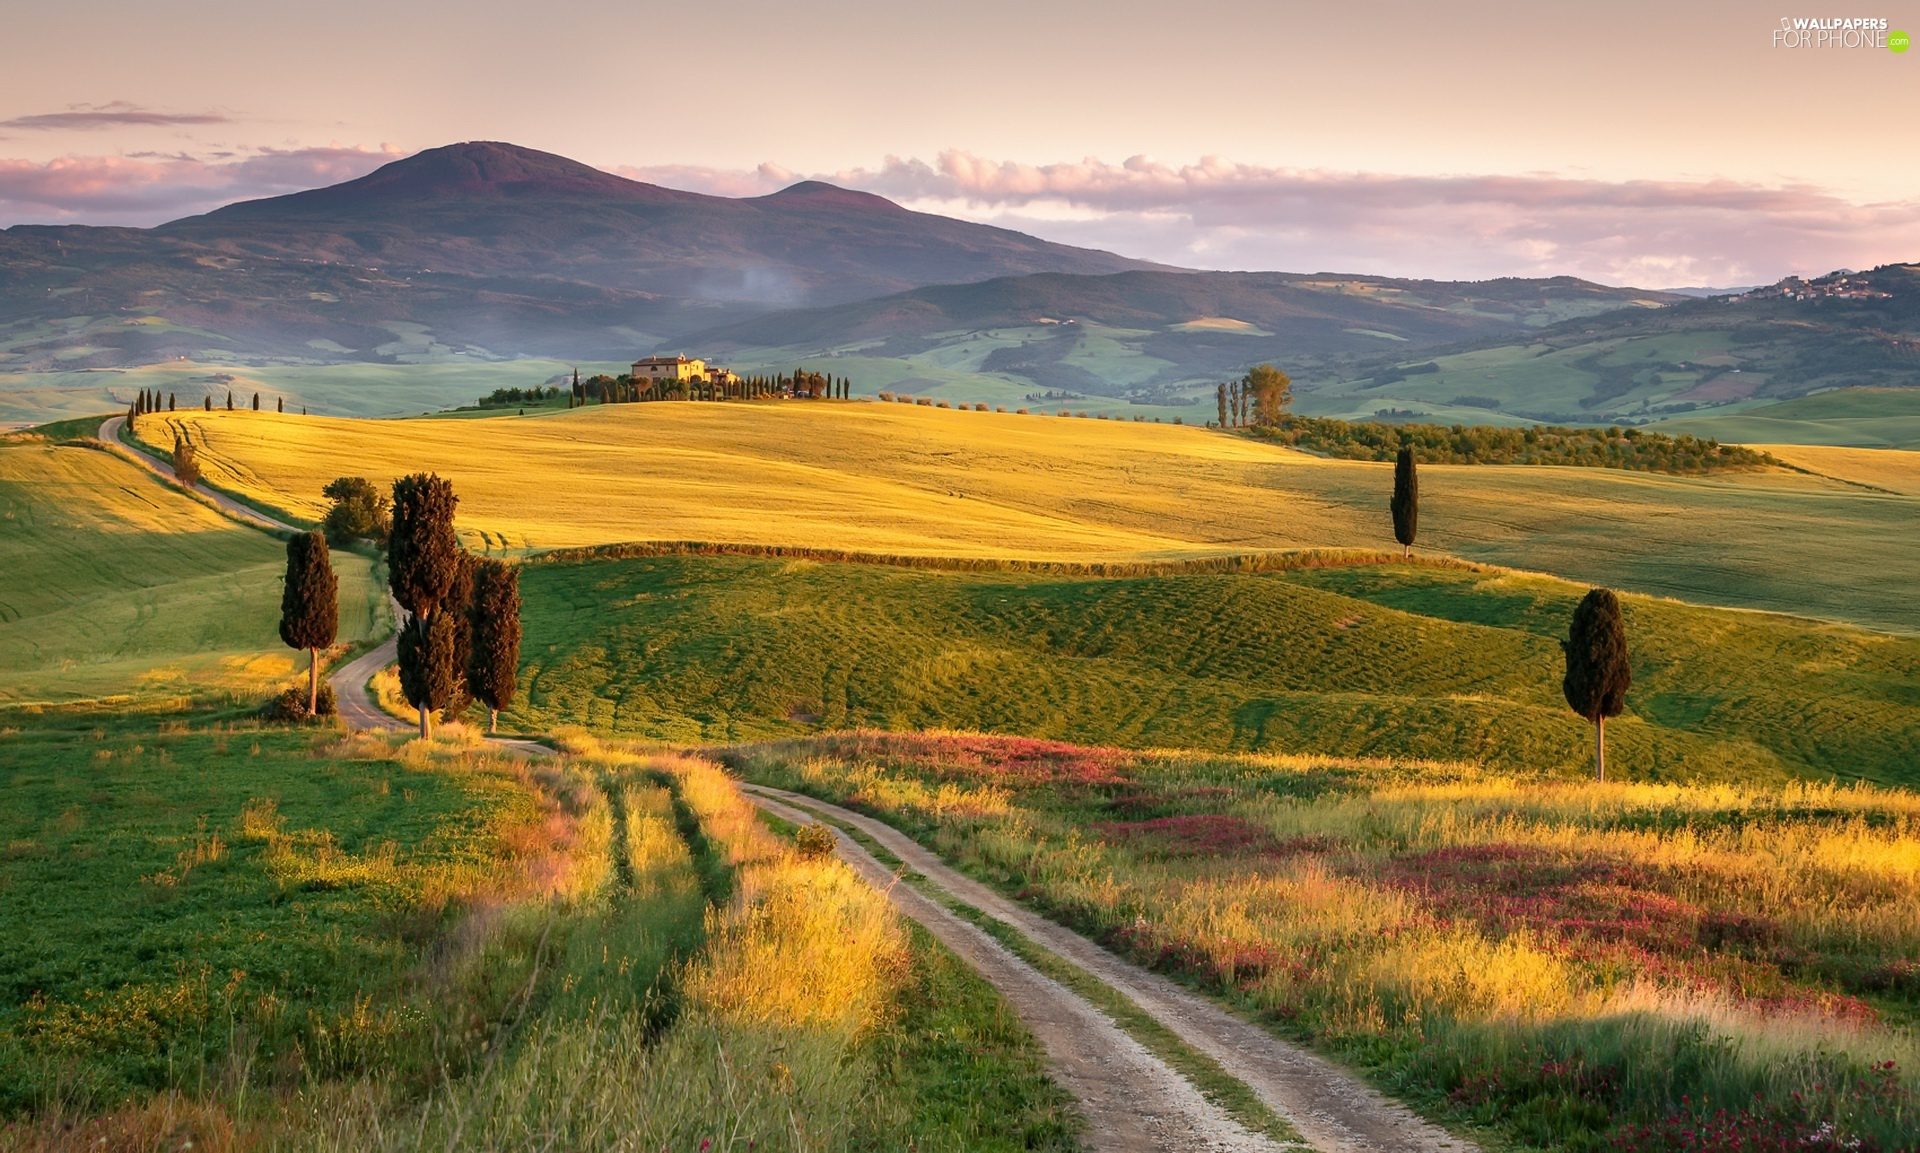 The Hills, field, viewes, Way, trees, Tuscany, Italy, Houses